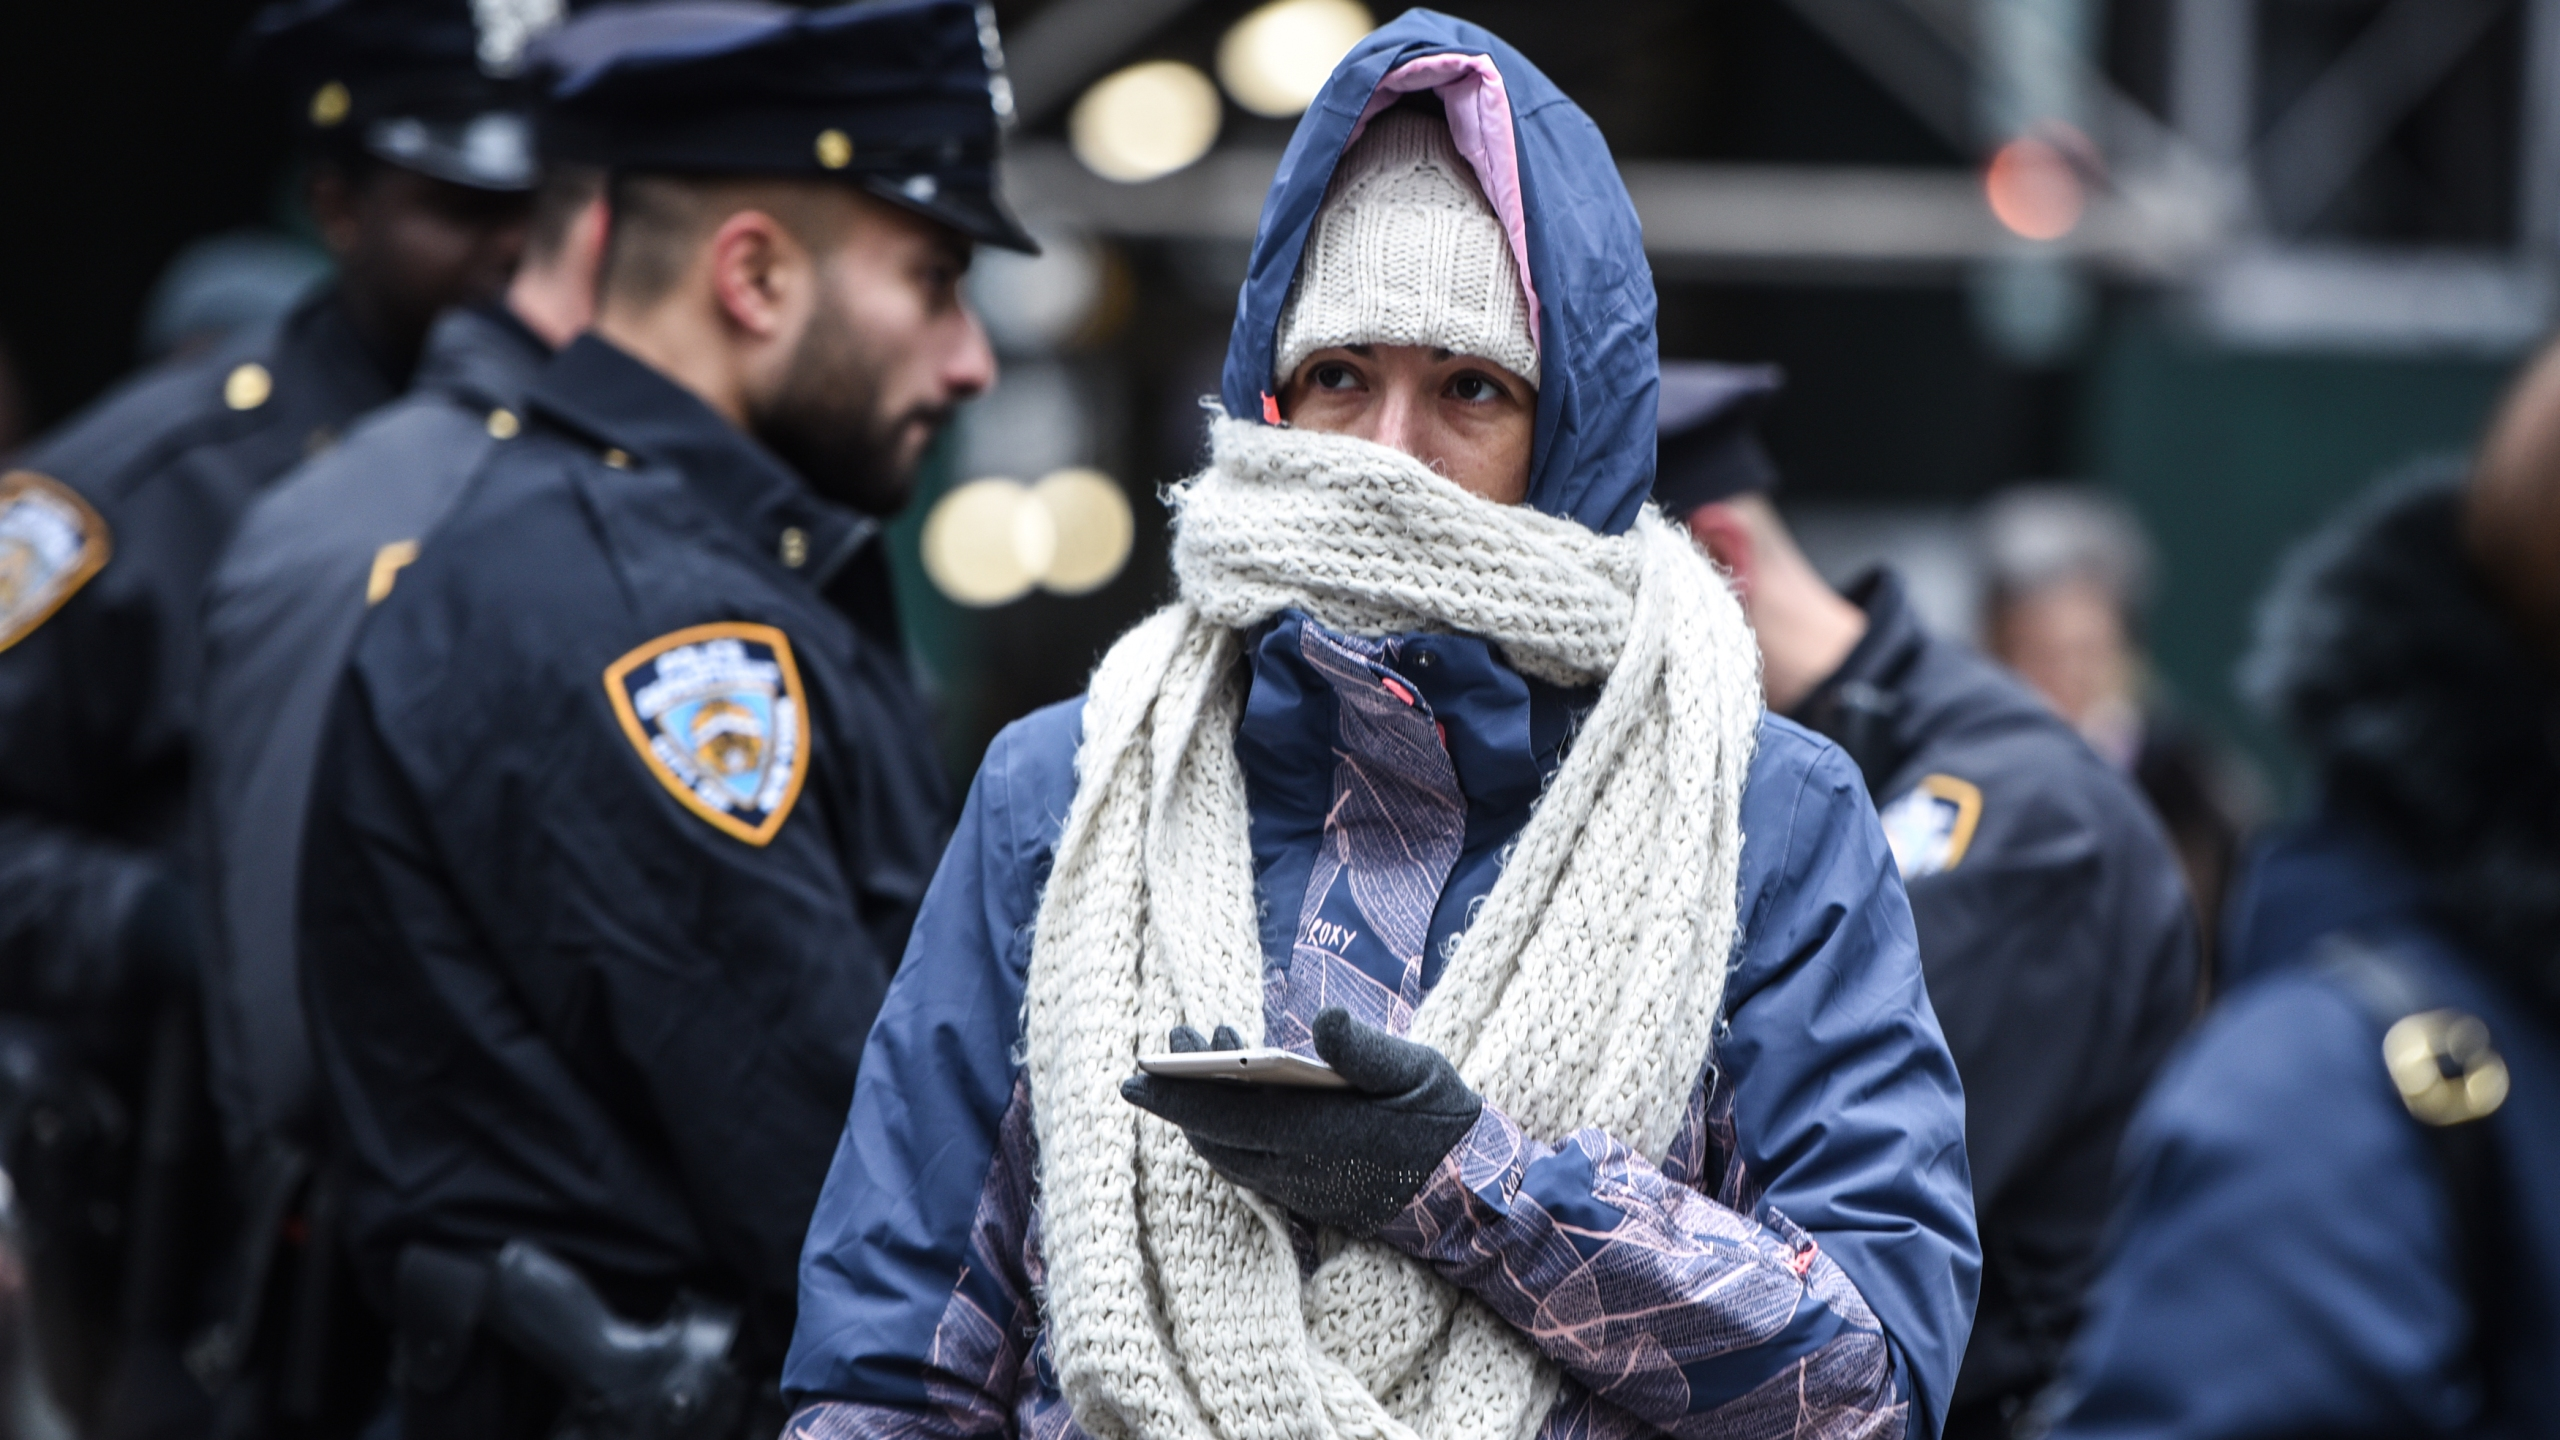 A person bundles up against the cold on November 12, 2019 in New York City. (Credit: Stephanie Keith/Getty Images)